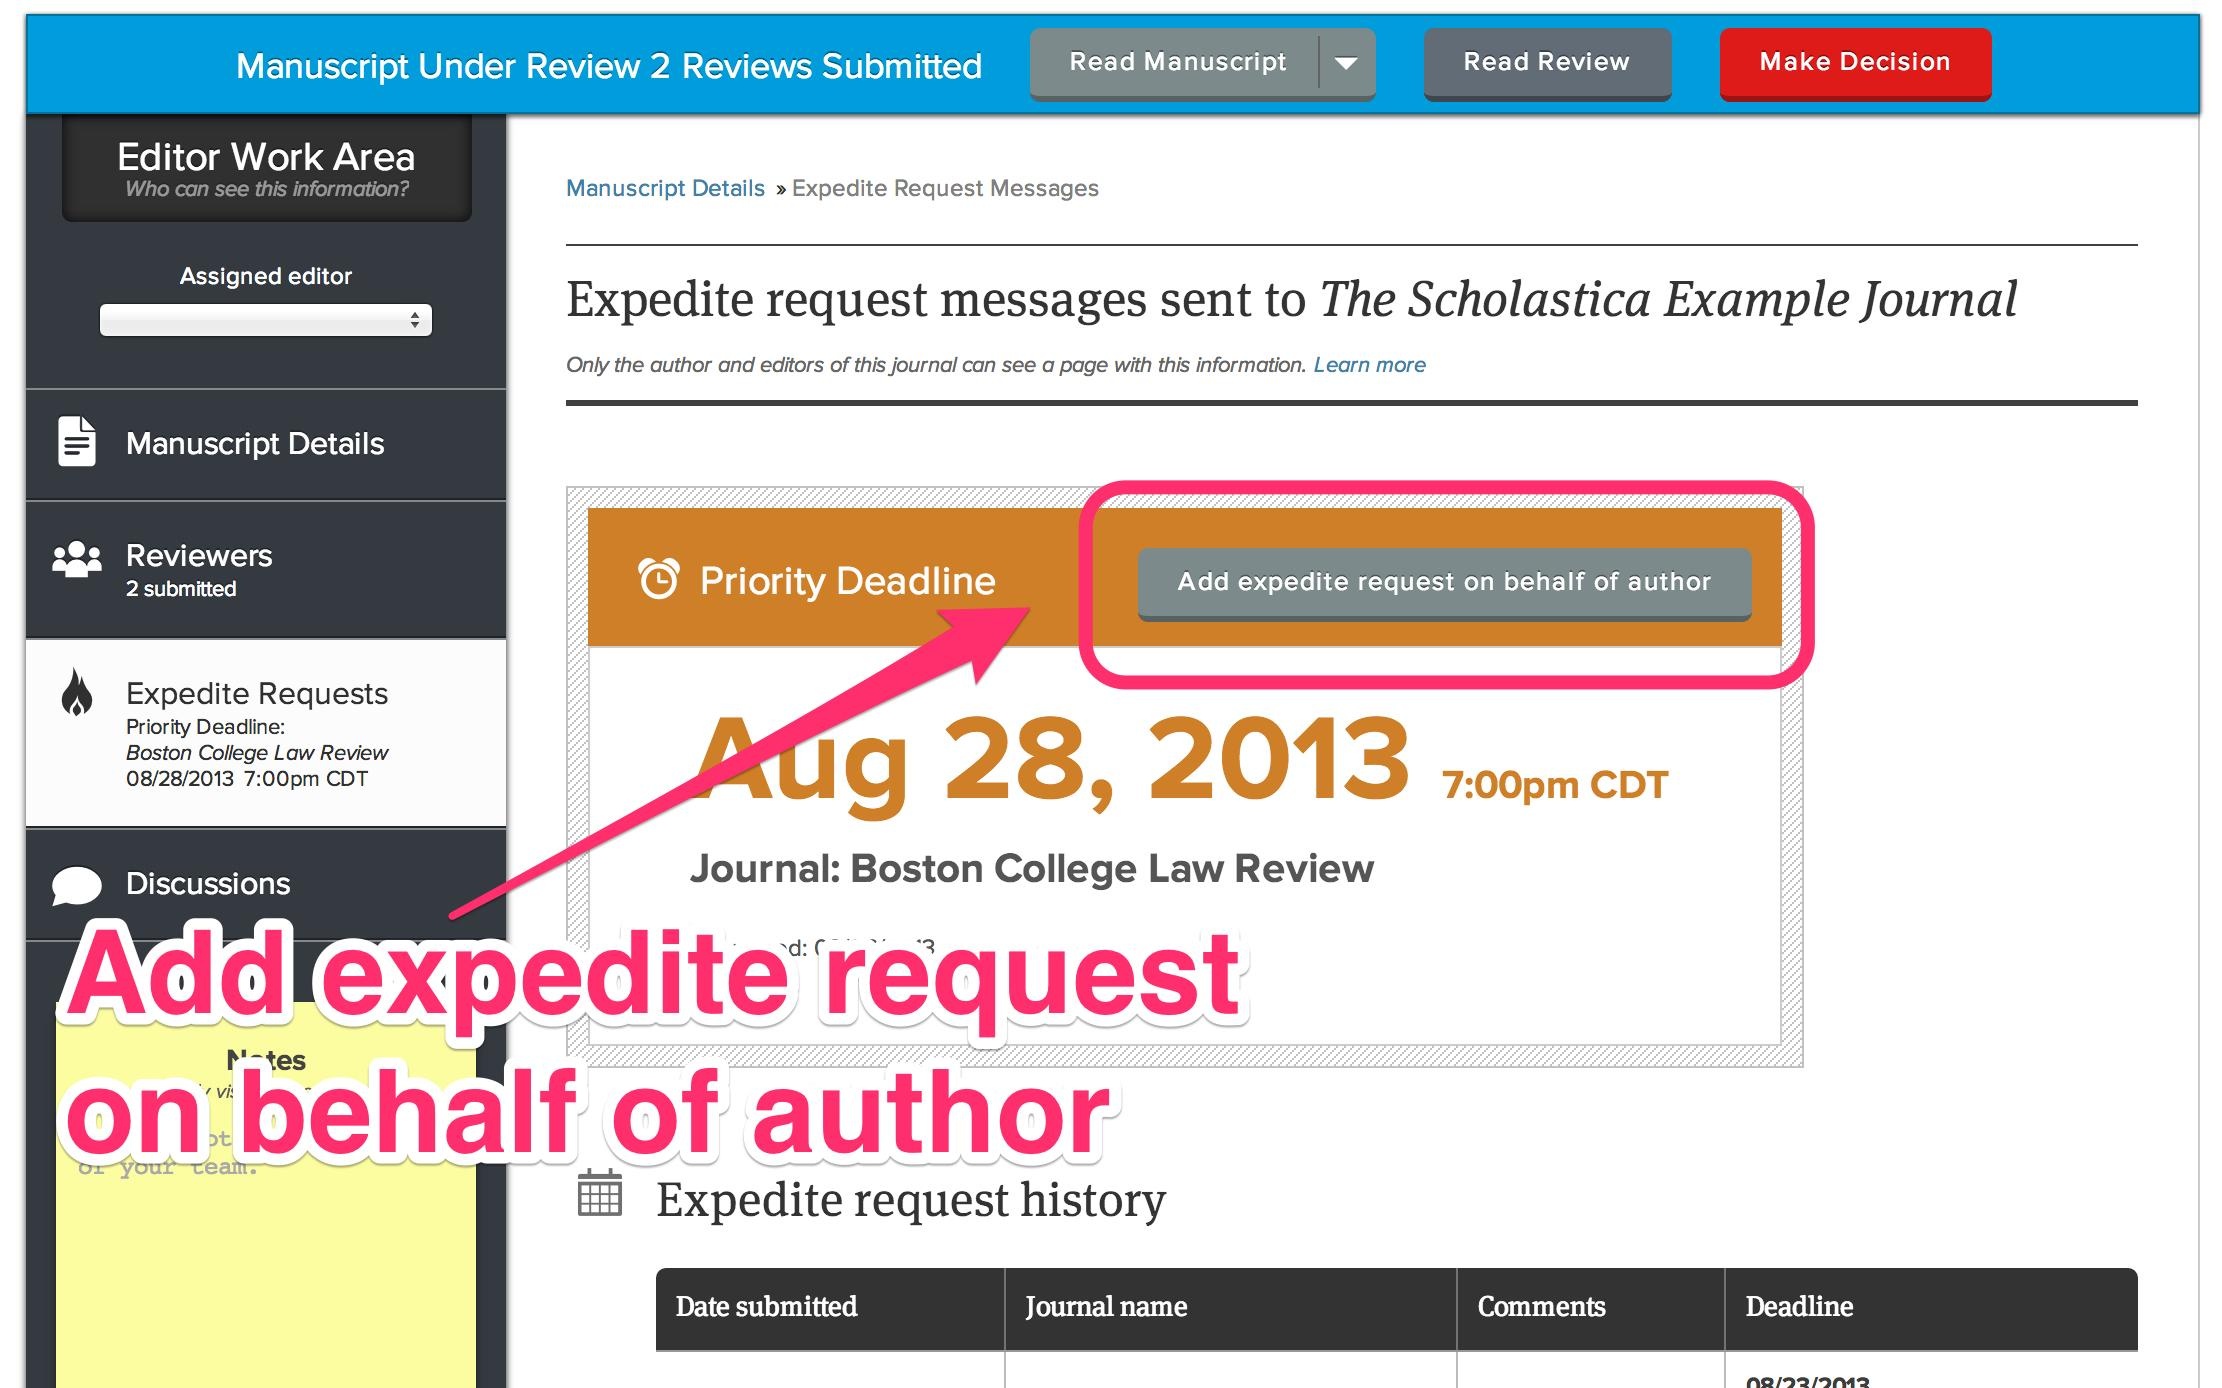 Add expedite request on behalf of author